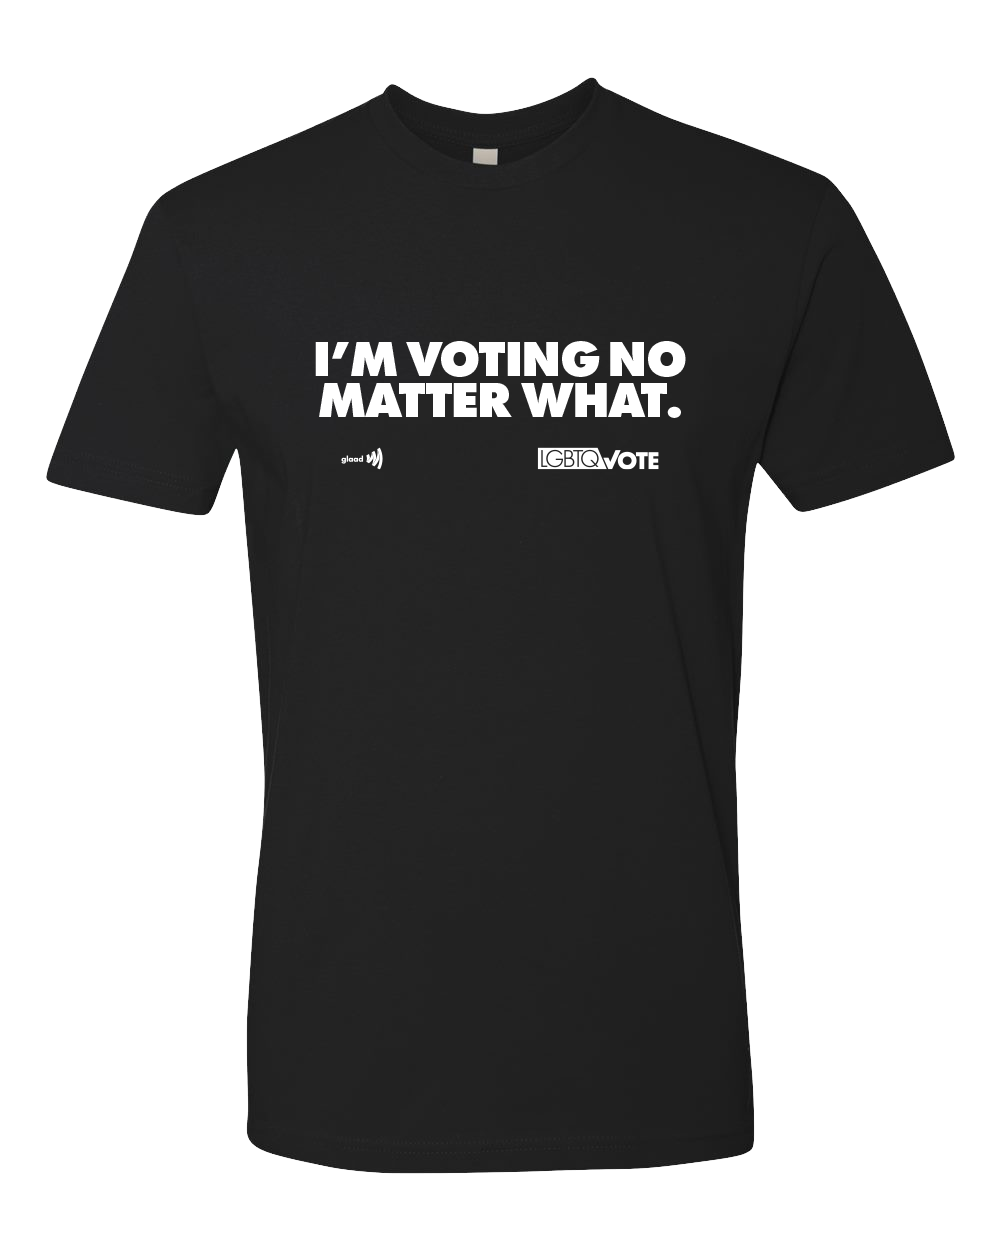 Voting No Matter What Shirt